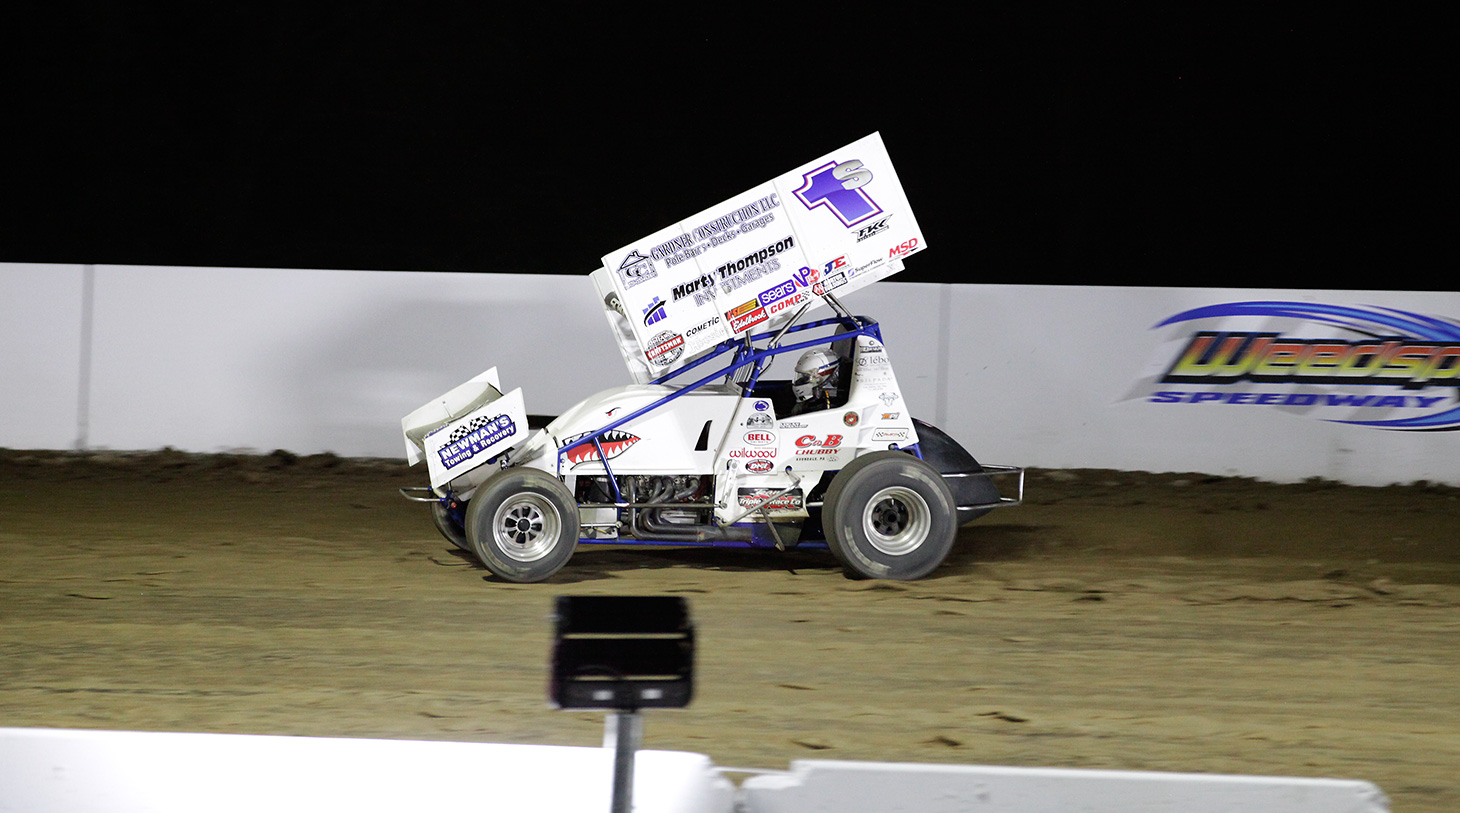 Logan Schuchart leading the 2016 A Main at Weedsport Speedway with the World of Outlaws. (Jeffrey Turford / TDP)